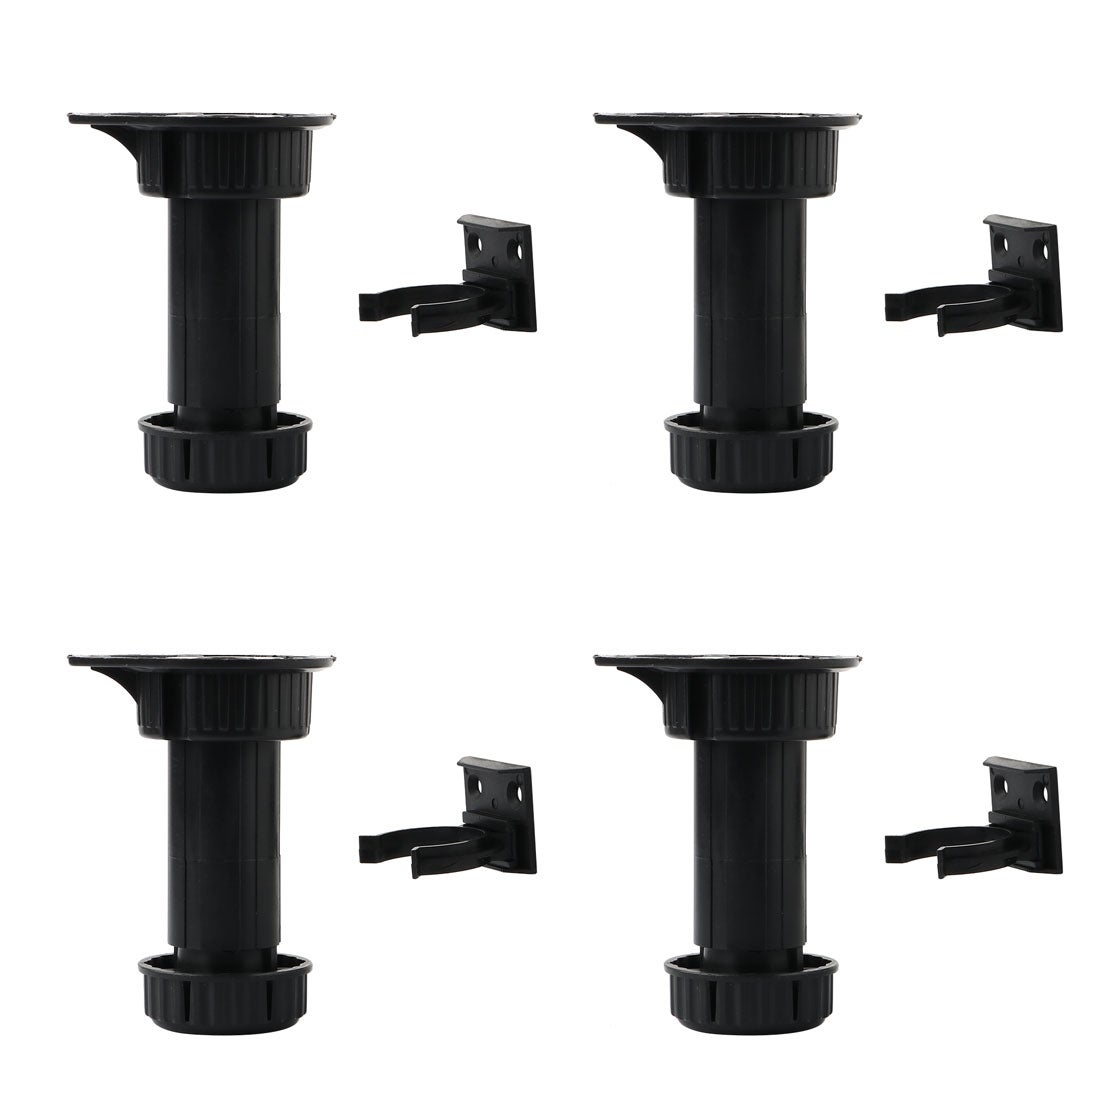 4pcs PP Adjustable Kitchen Cabinet Legs Feet Height(Total:100-145mm) x 43mm  Dia